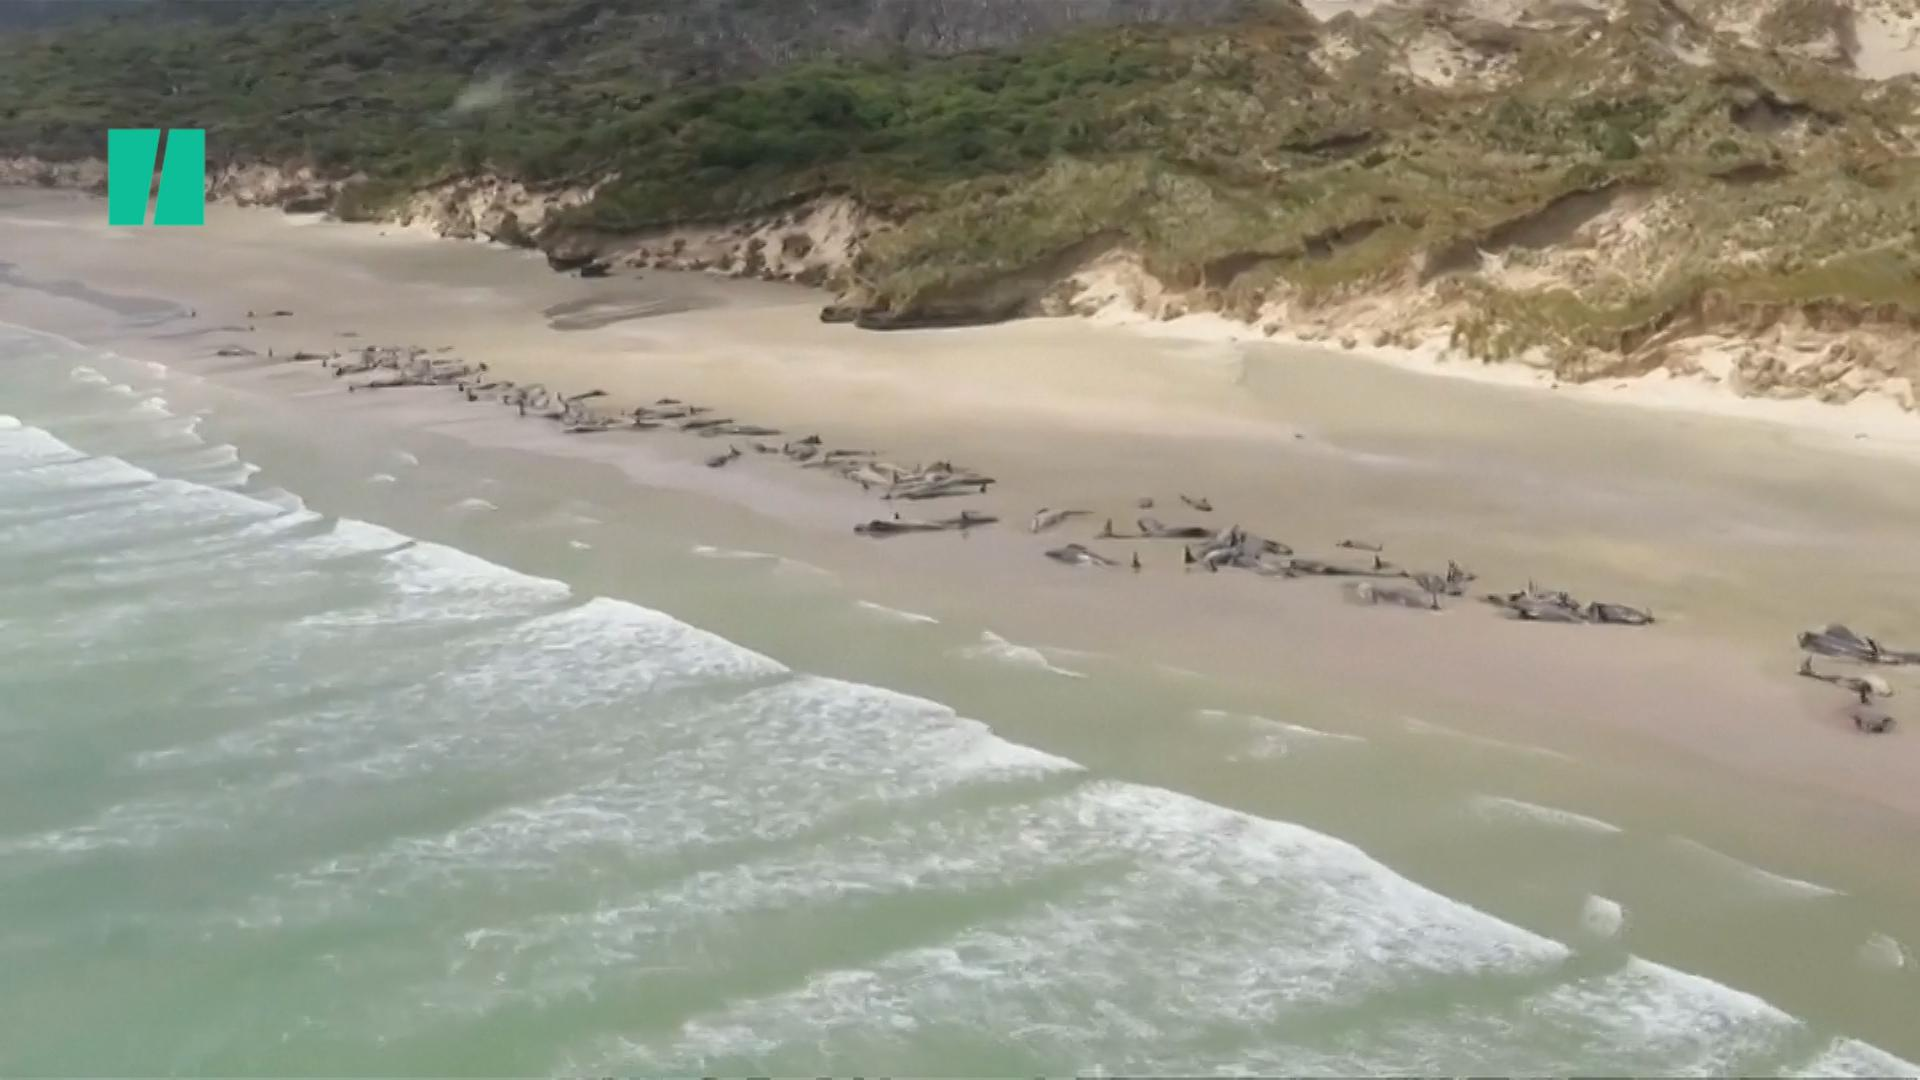 145 Pilot Whales Die After Stranding Themselves On New Zealand Beach